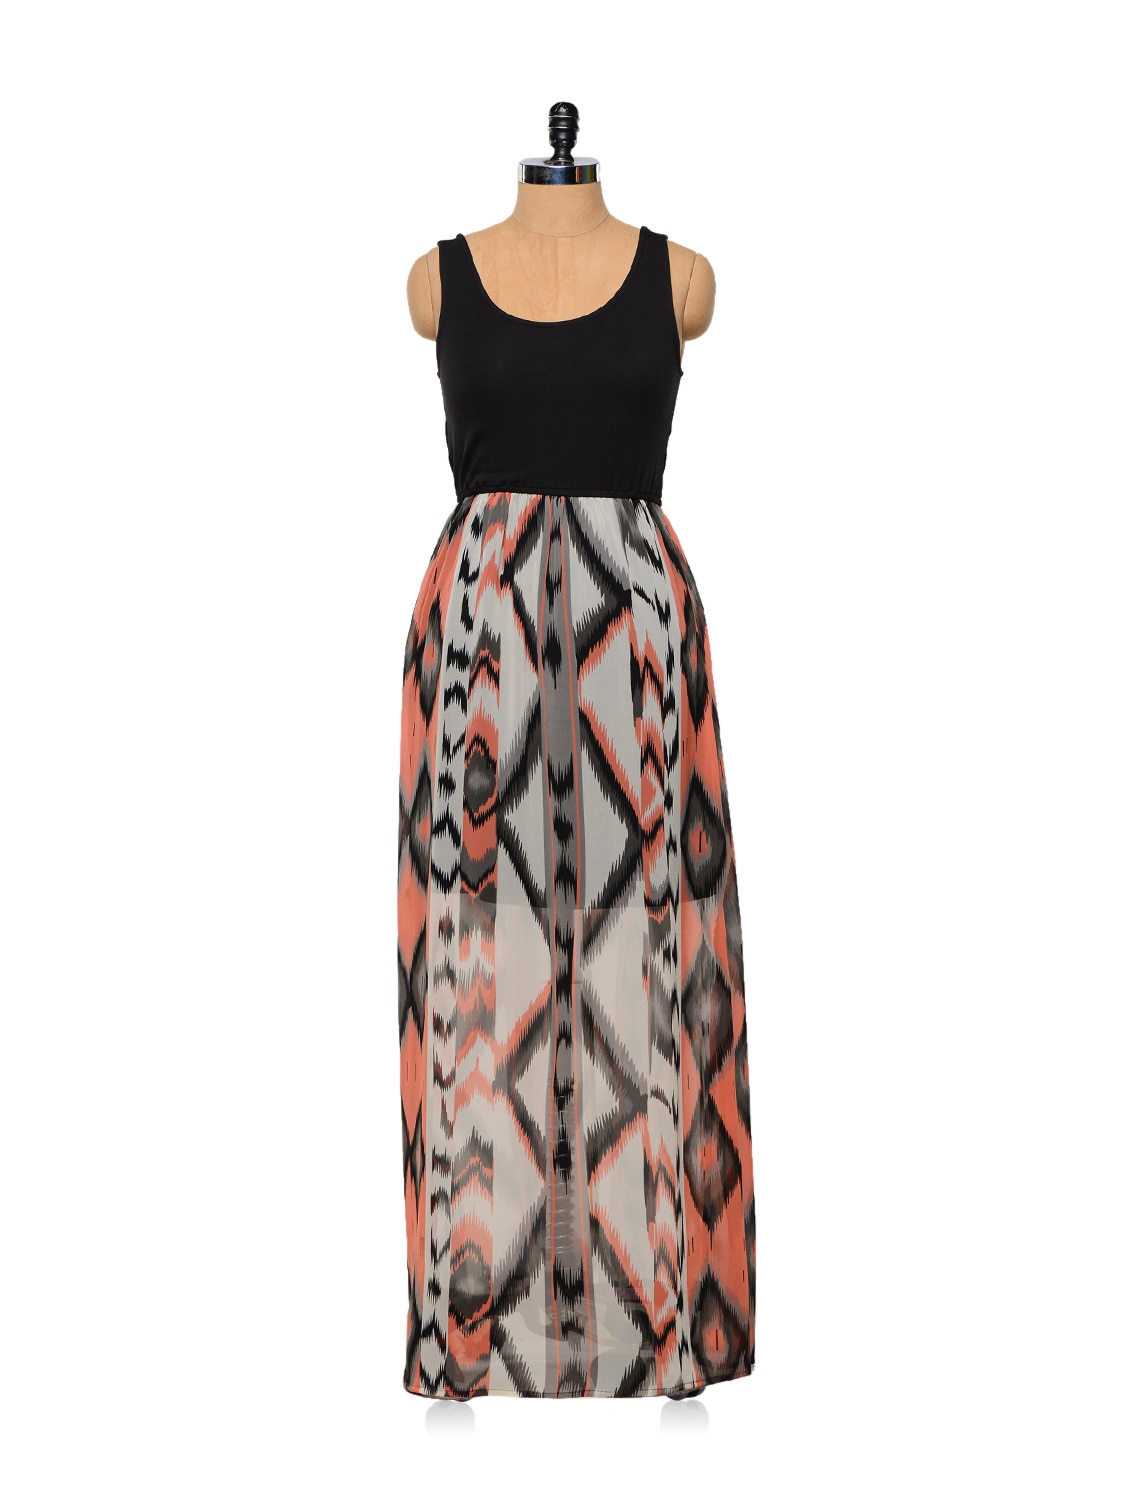 Print Play Maxi Dress - Femella